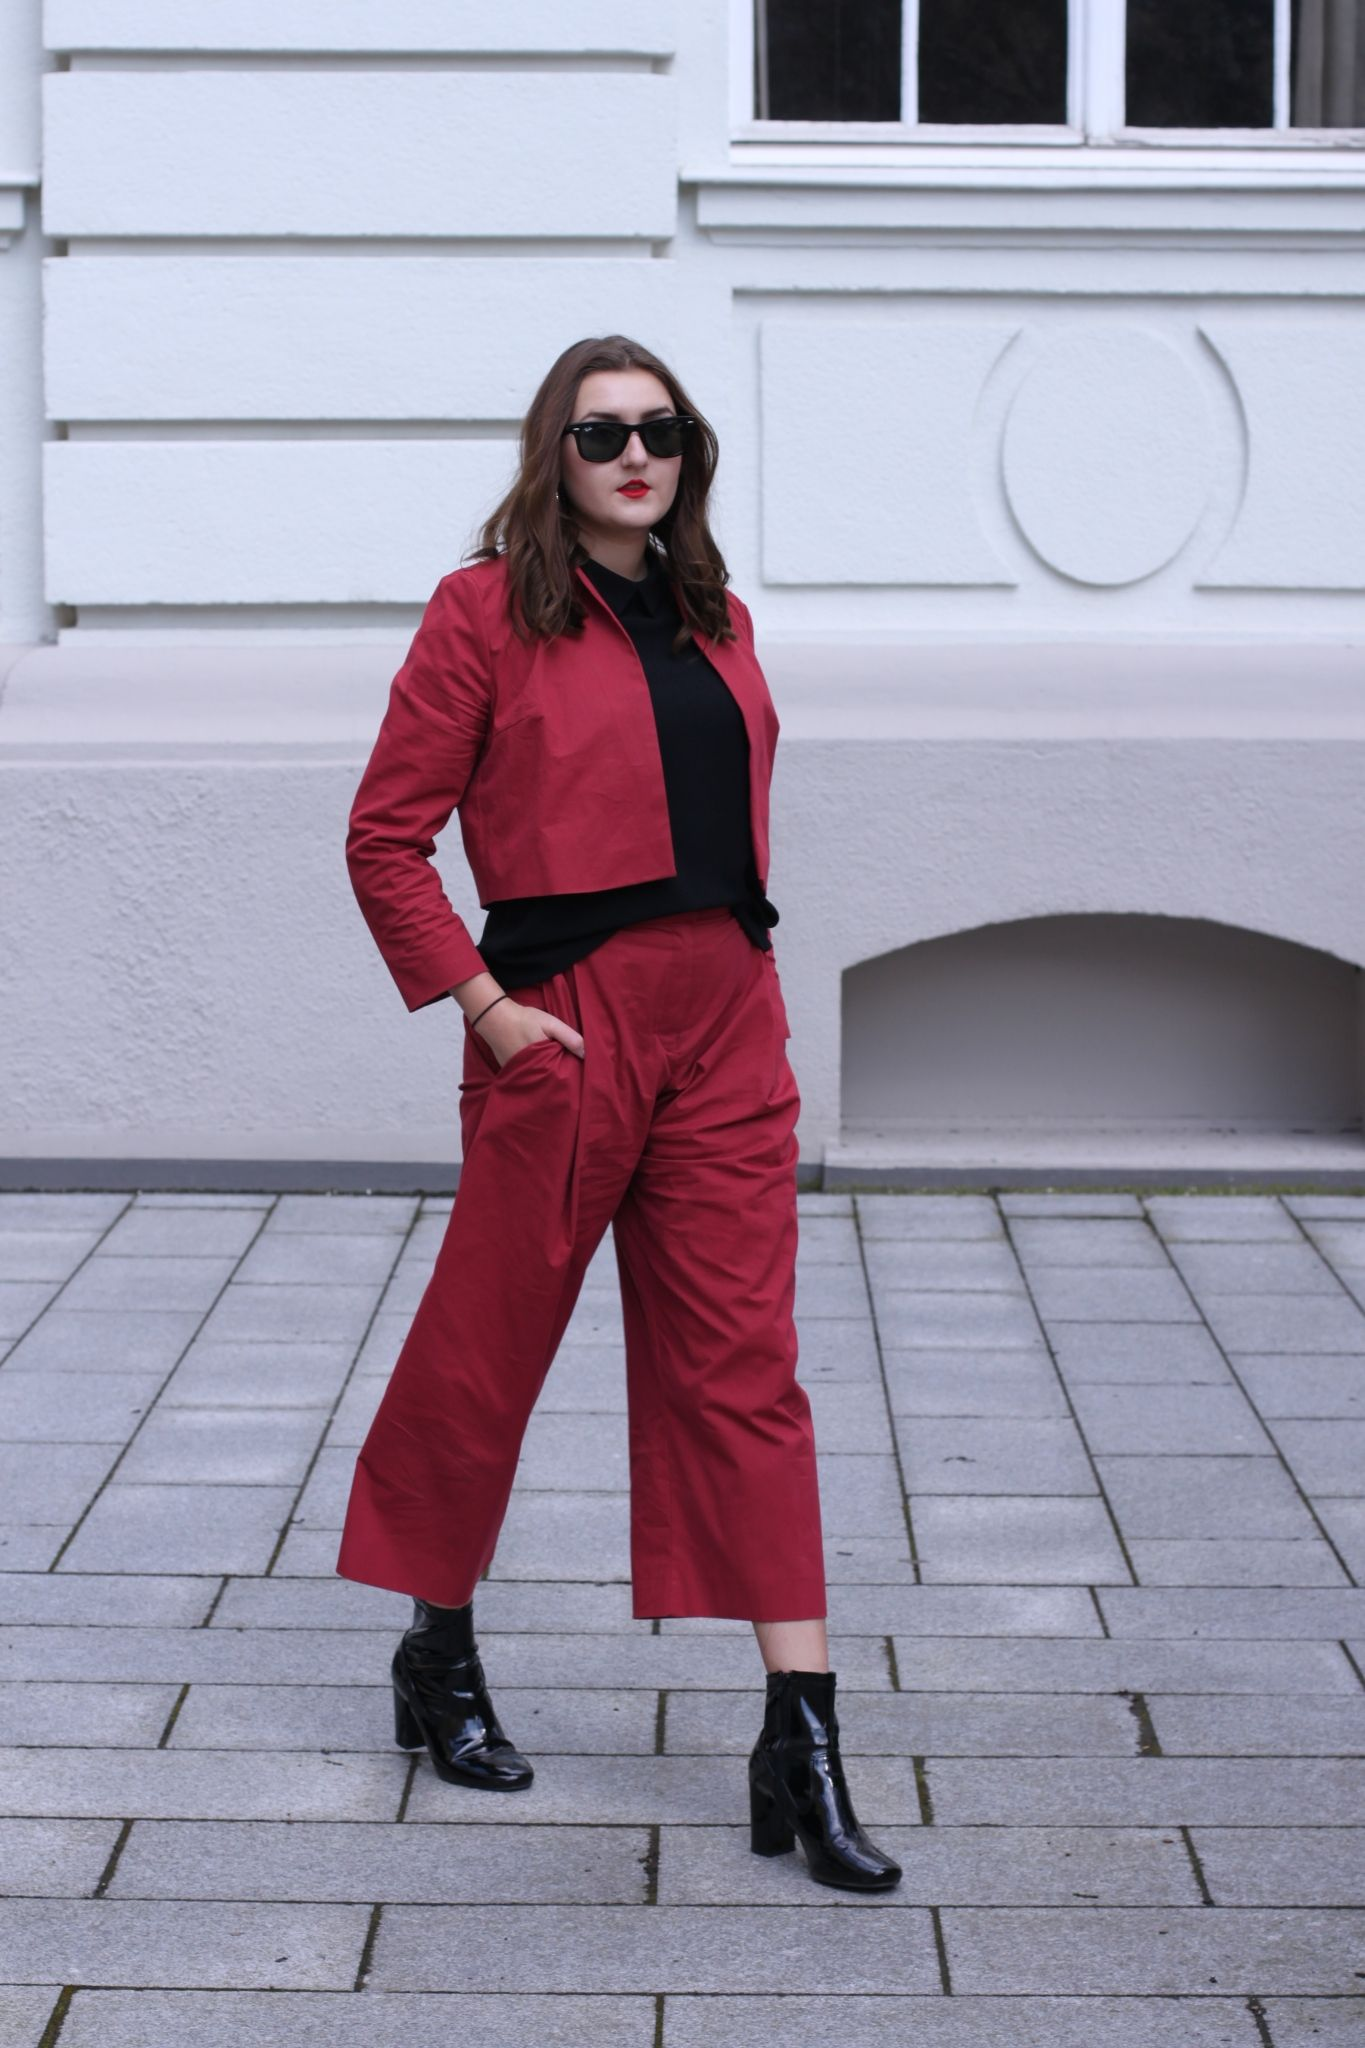 red suit with a culotte & patent leather boots | lauracoeur.com